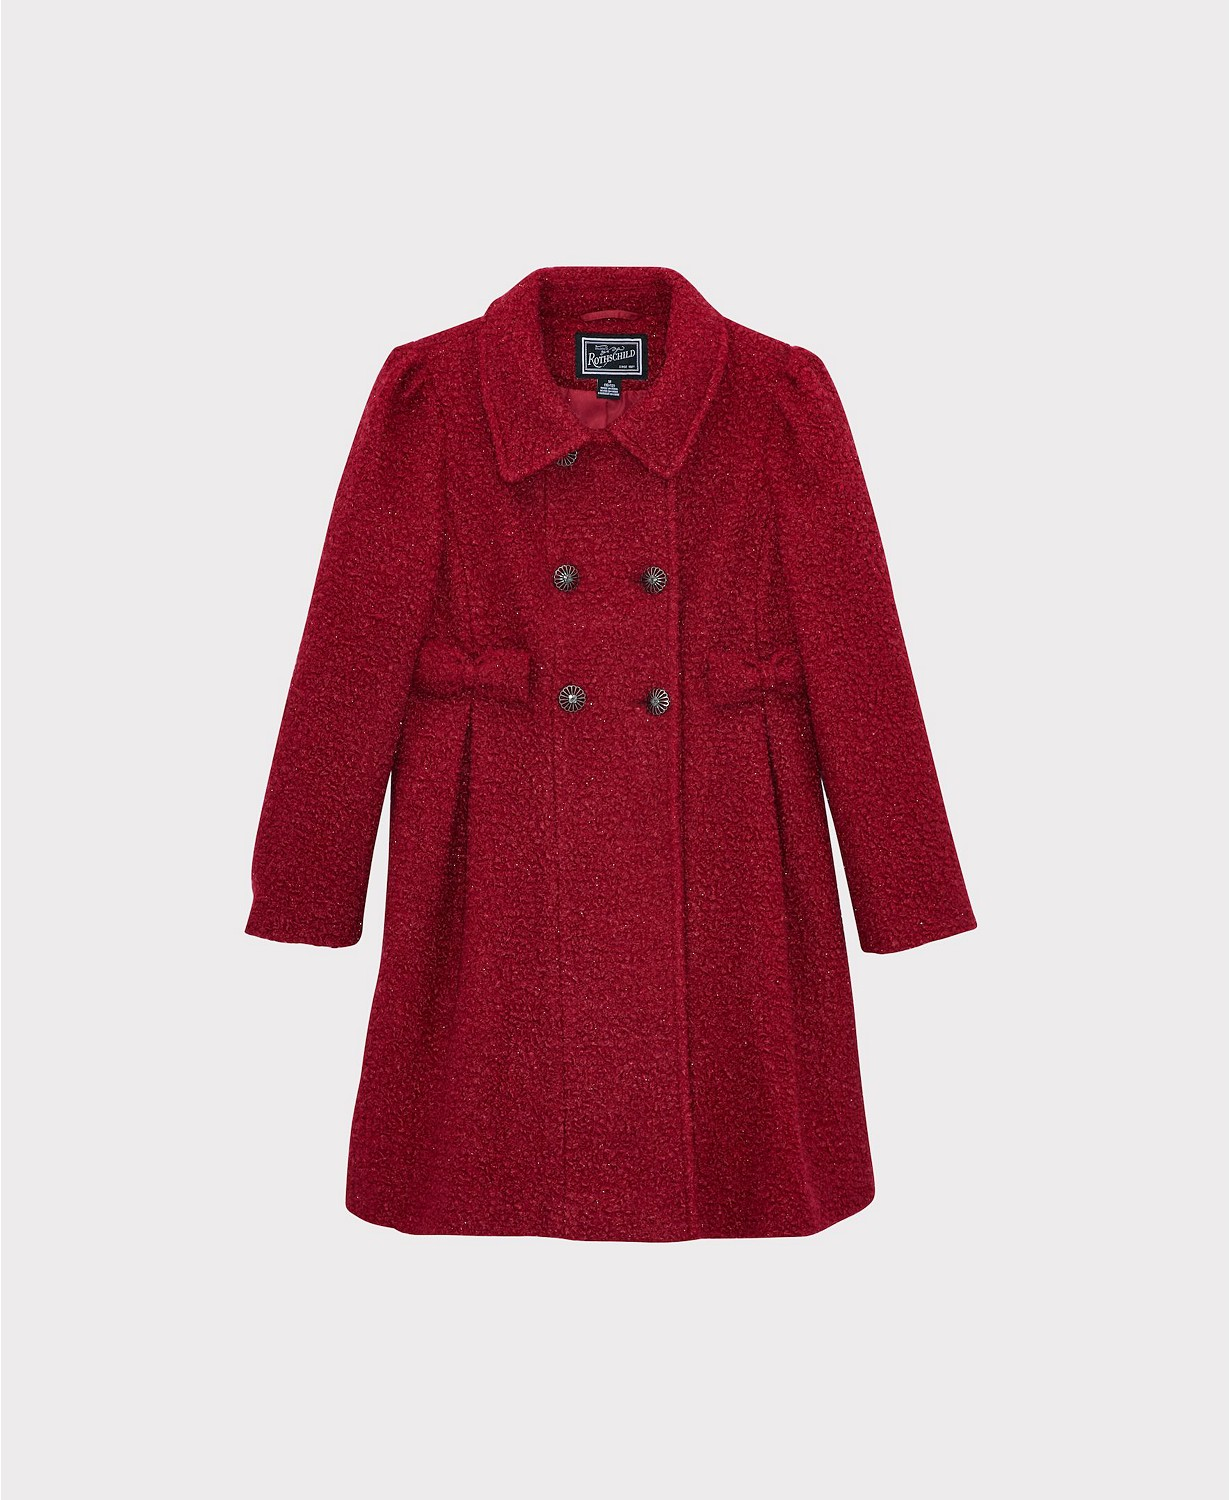 Lowest Price of the Season Coats & Jackets